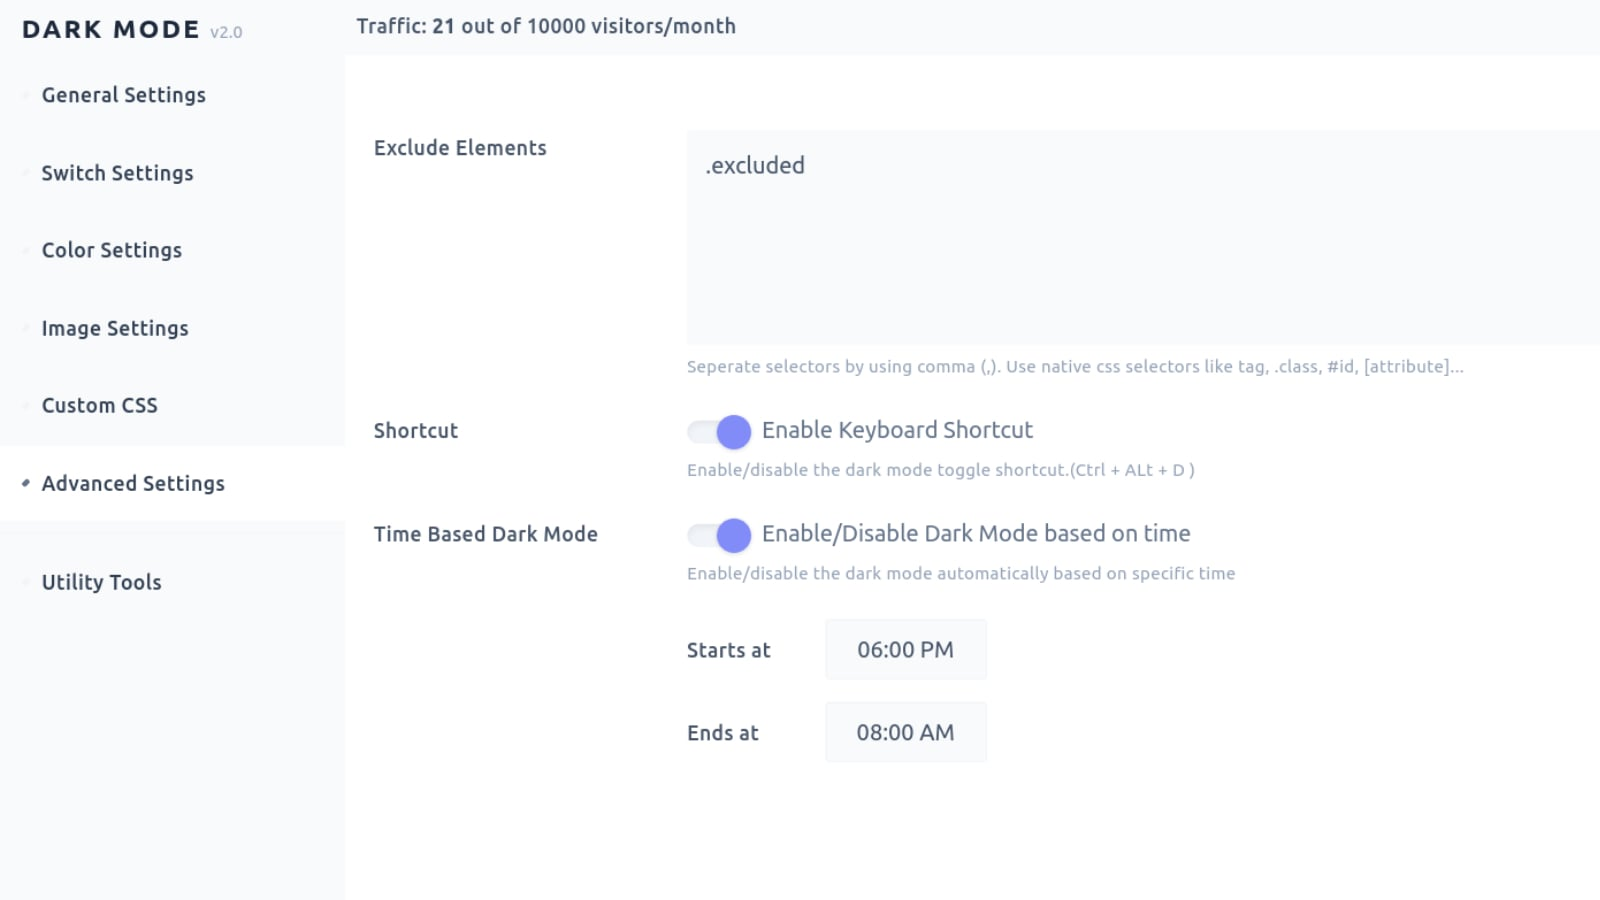 Exclude elements, time based Dark Mode and Keyboard Shortcut